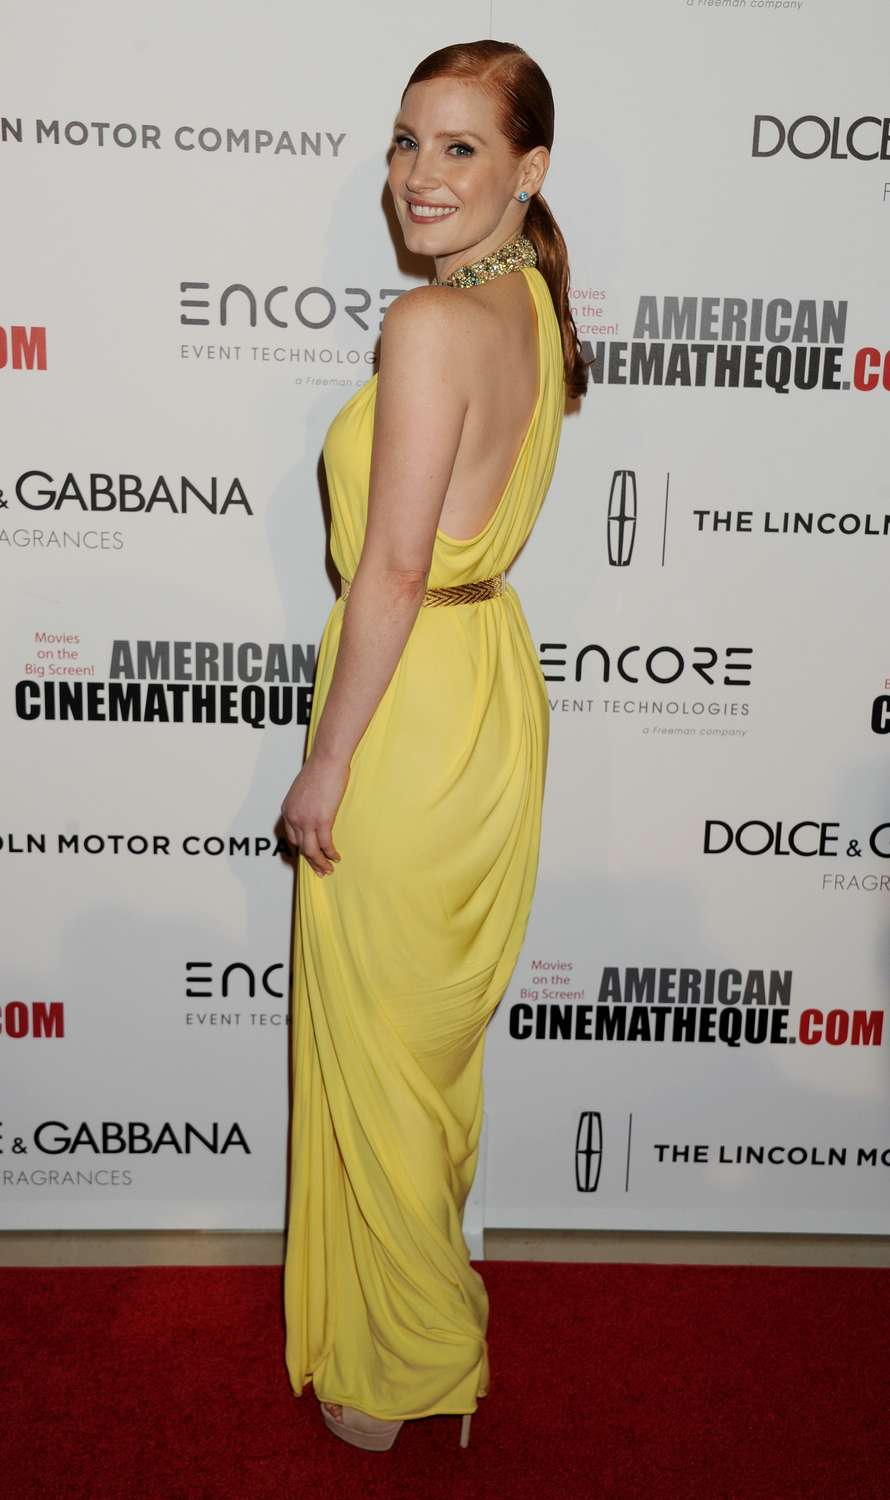 Jessica-chastain-american-cinematheque-